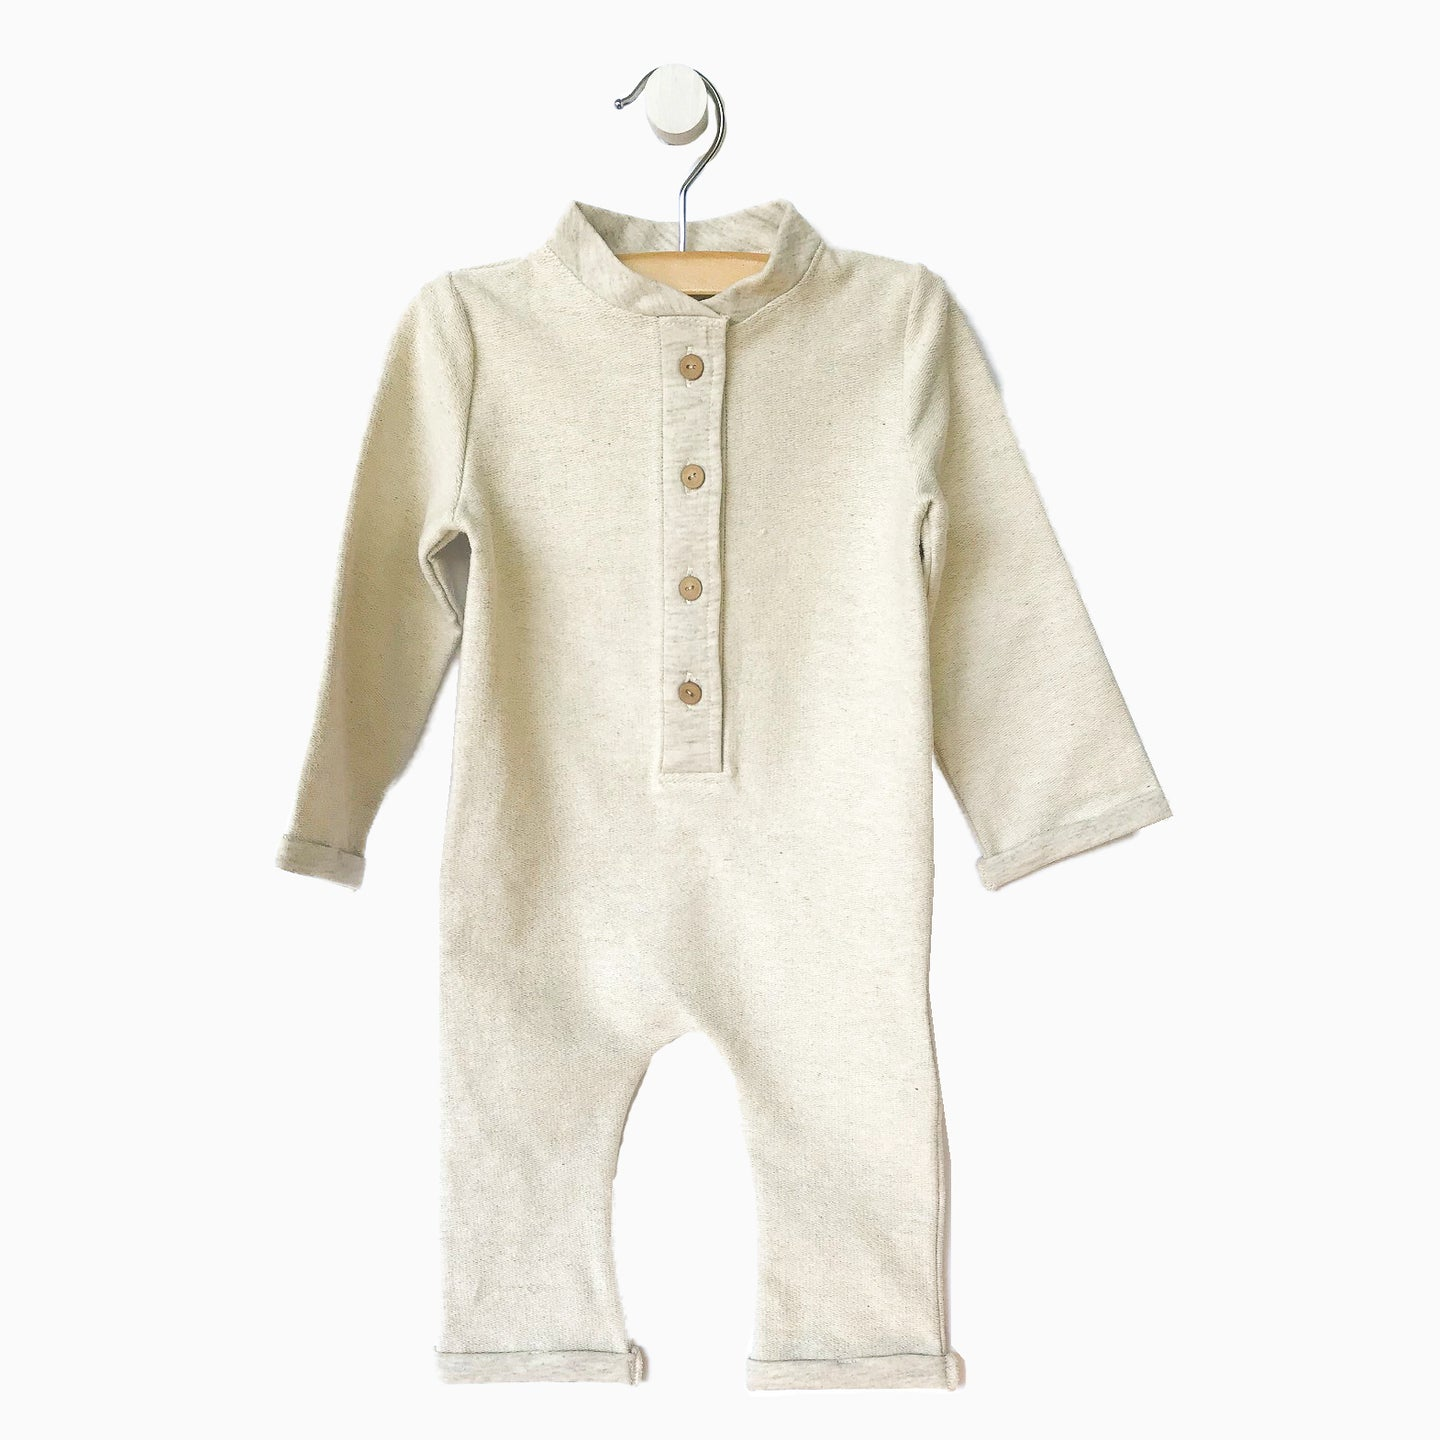 Baby Girl Clothes: heather gray boy long sleeve romper